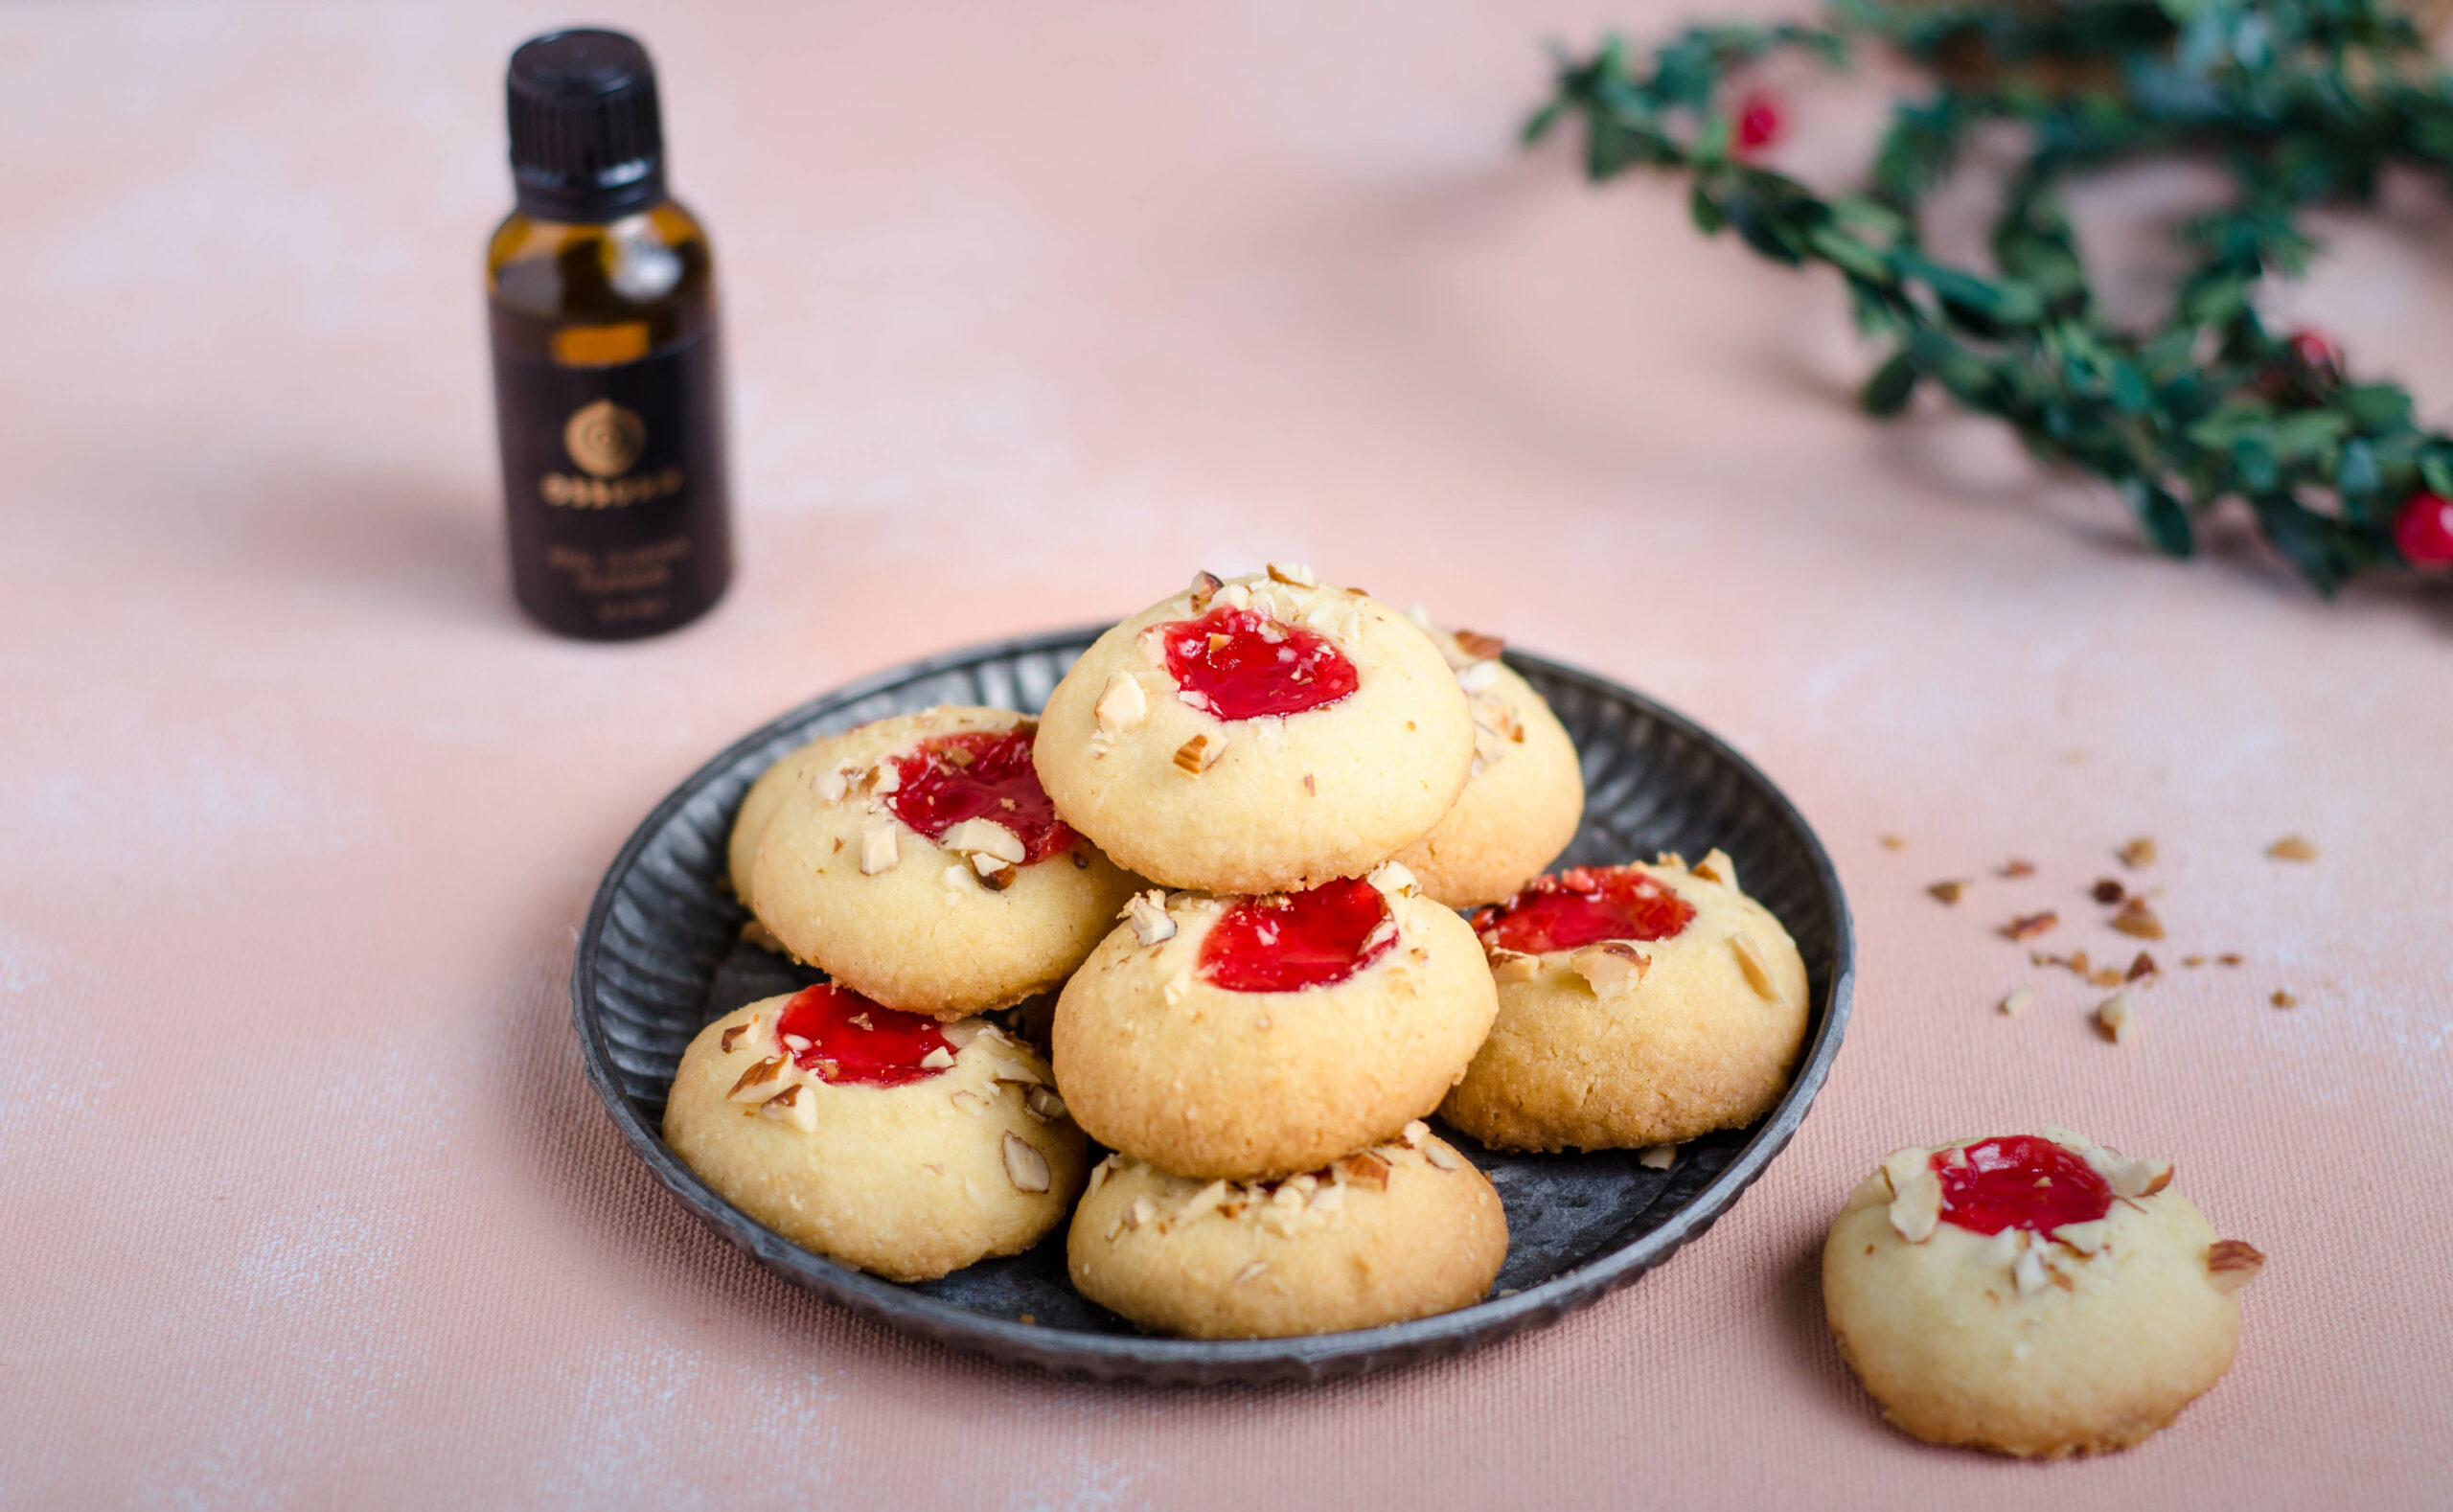 thumbprint cookies-7583-2